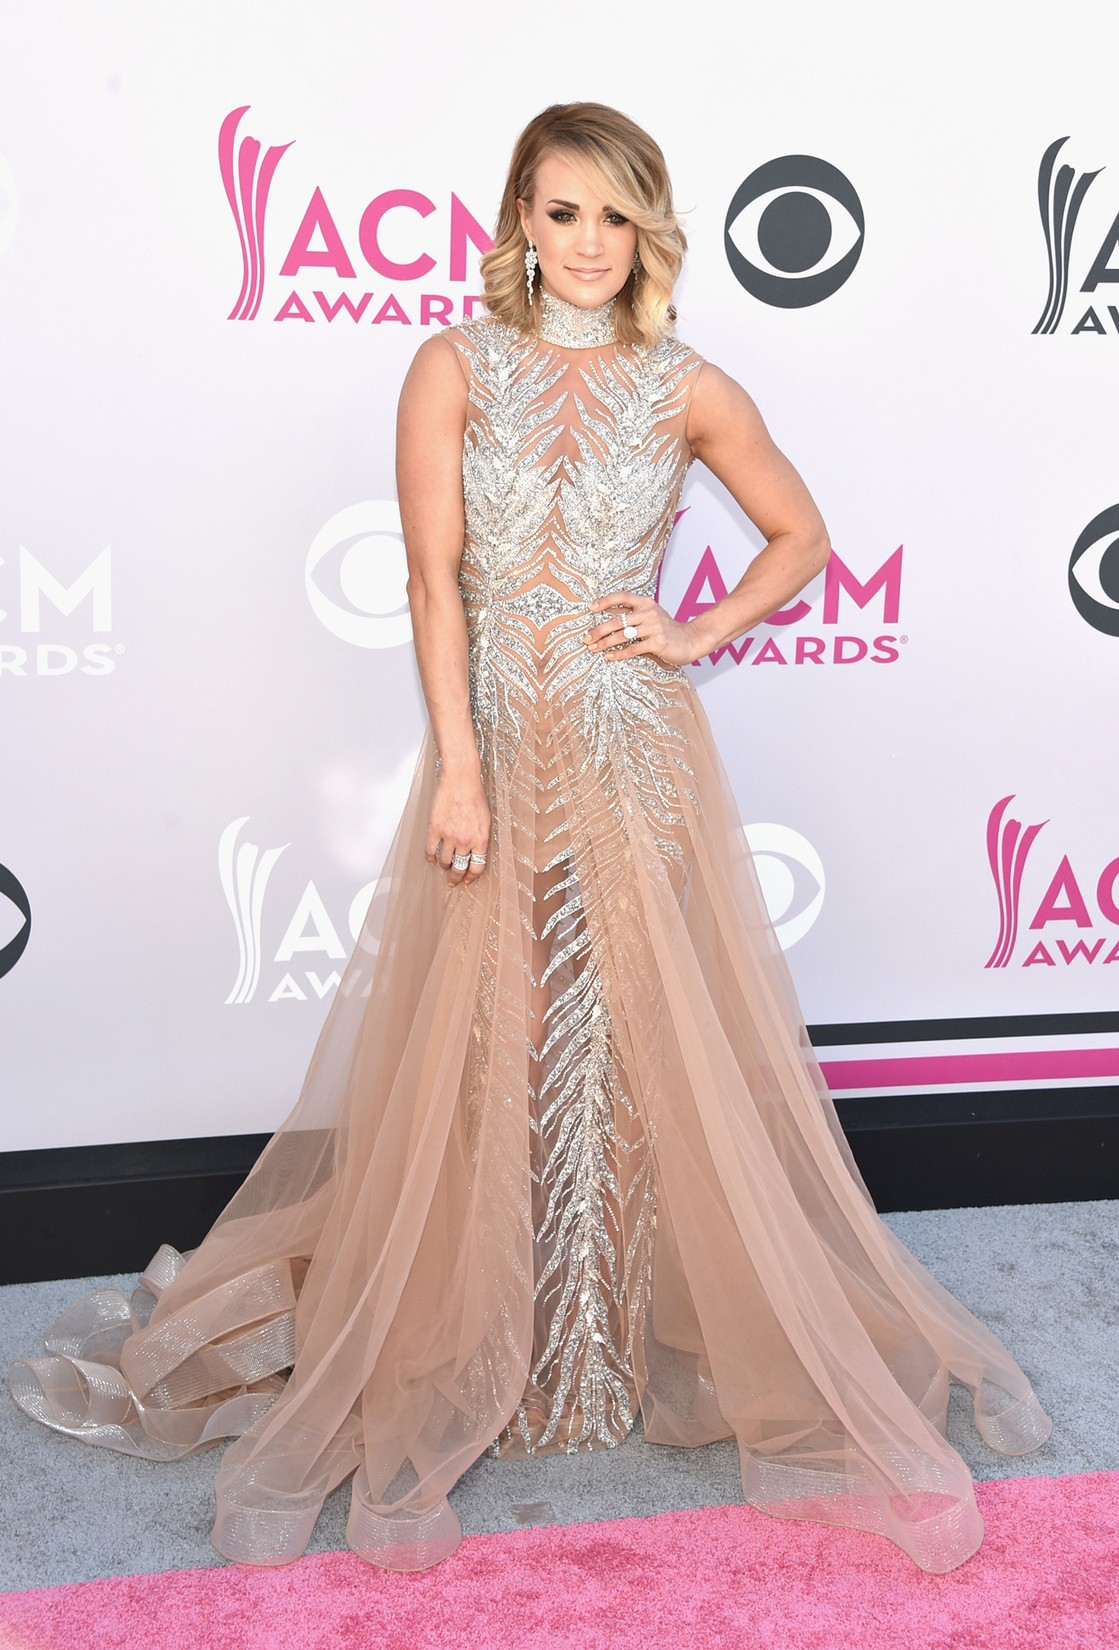 Carrie Underwood attends the 52nd Academy Of Country Music Awards at Toshiba Plaza on April 2, 2017 in Las Vegas.